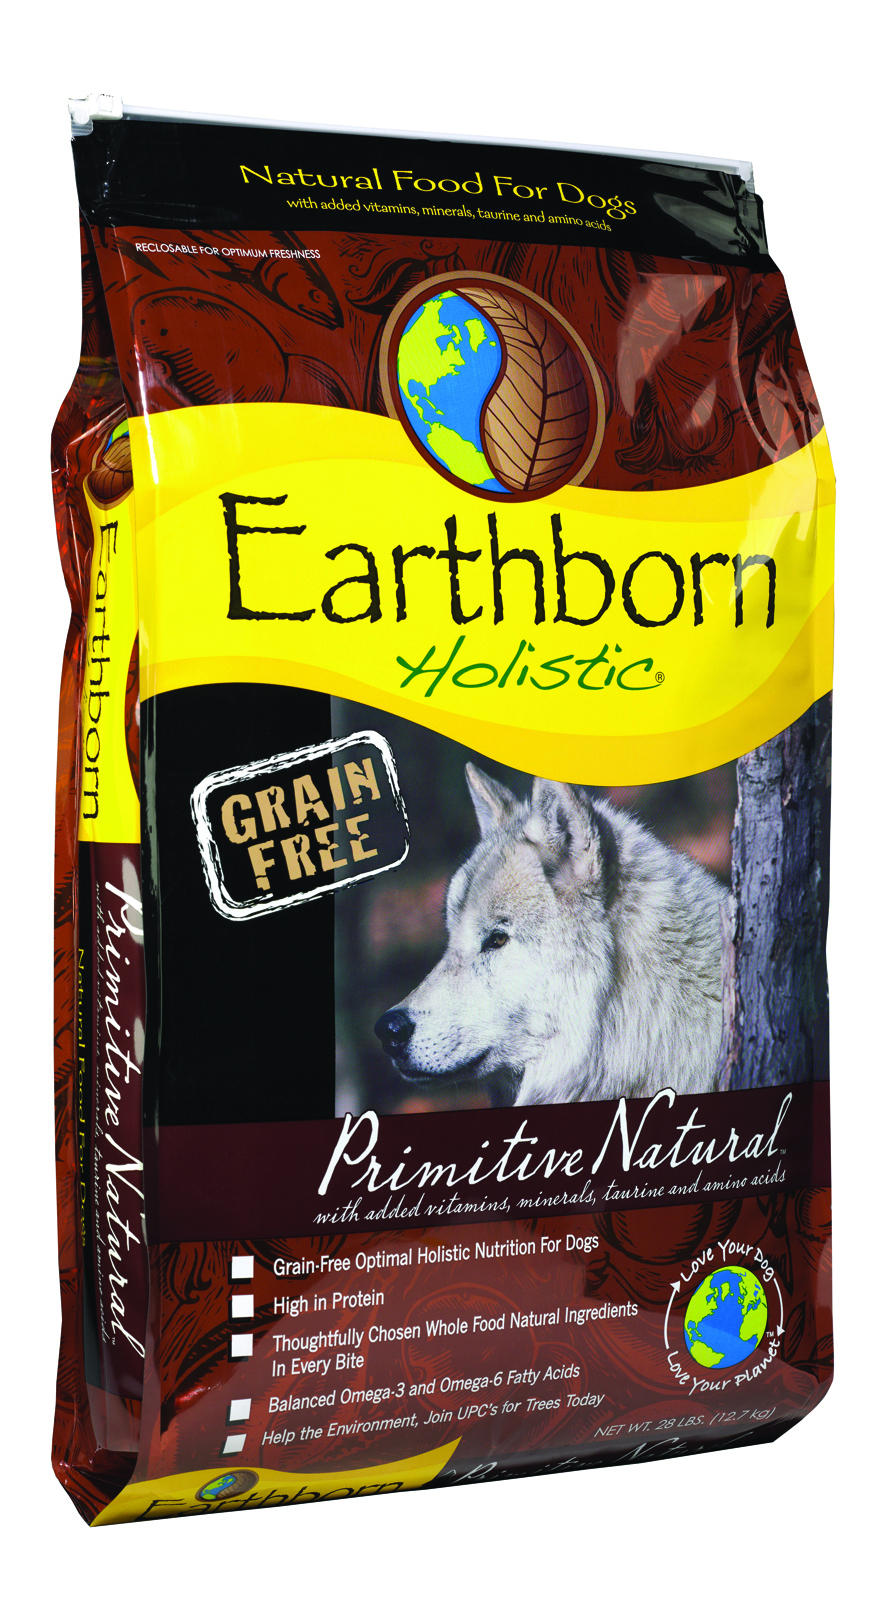 Earthborn Holistic Primitive Natural Dog Food Reviews